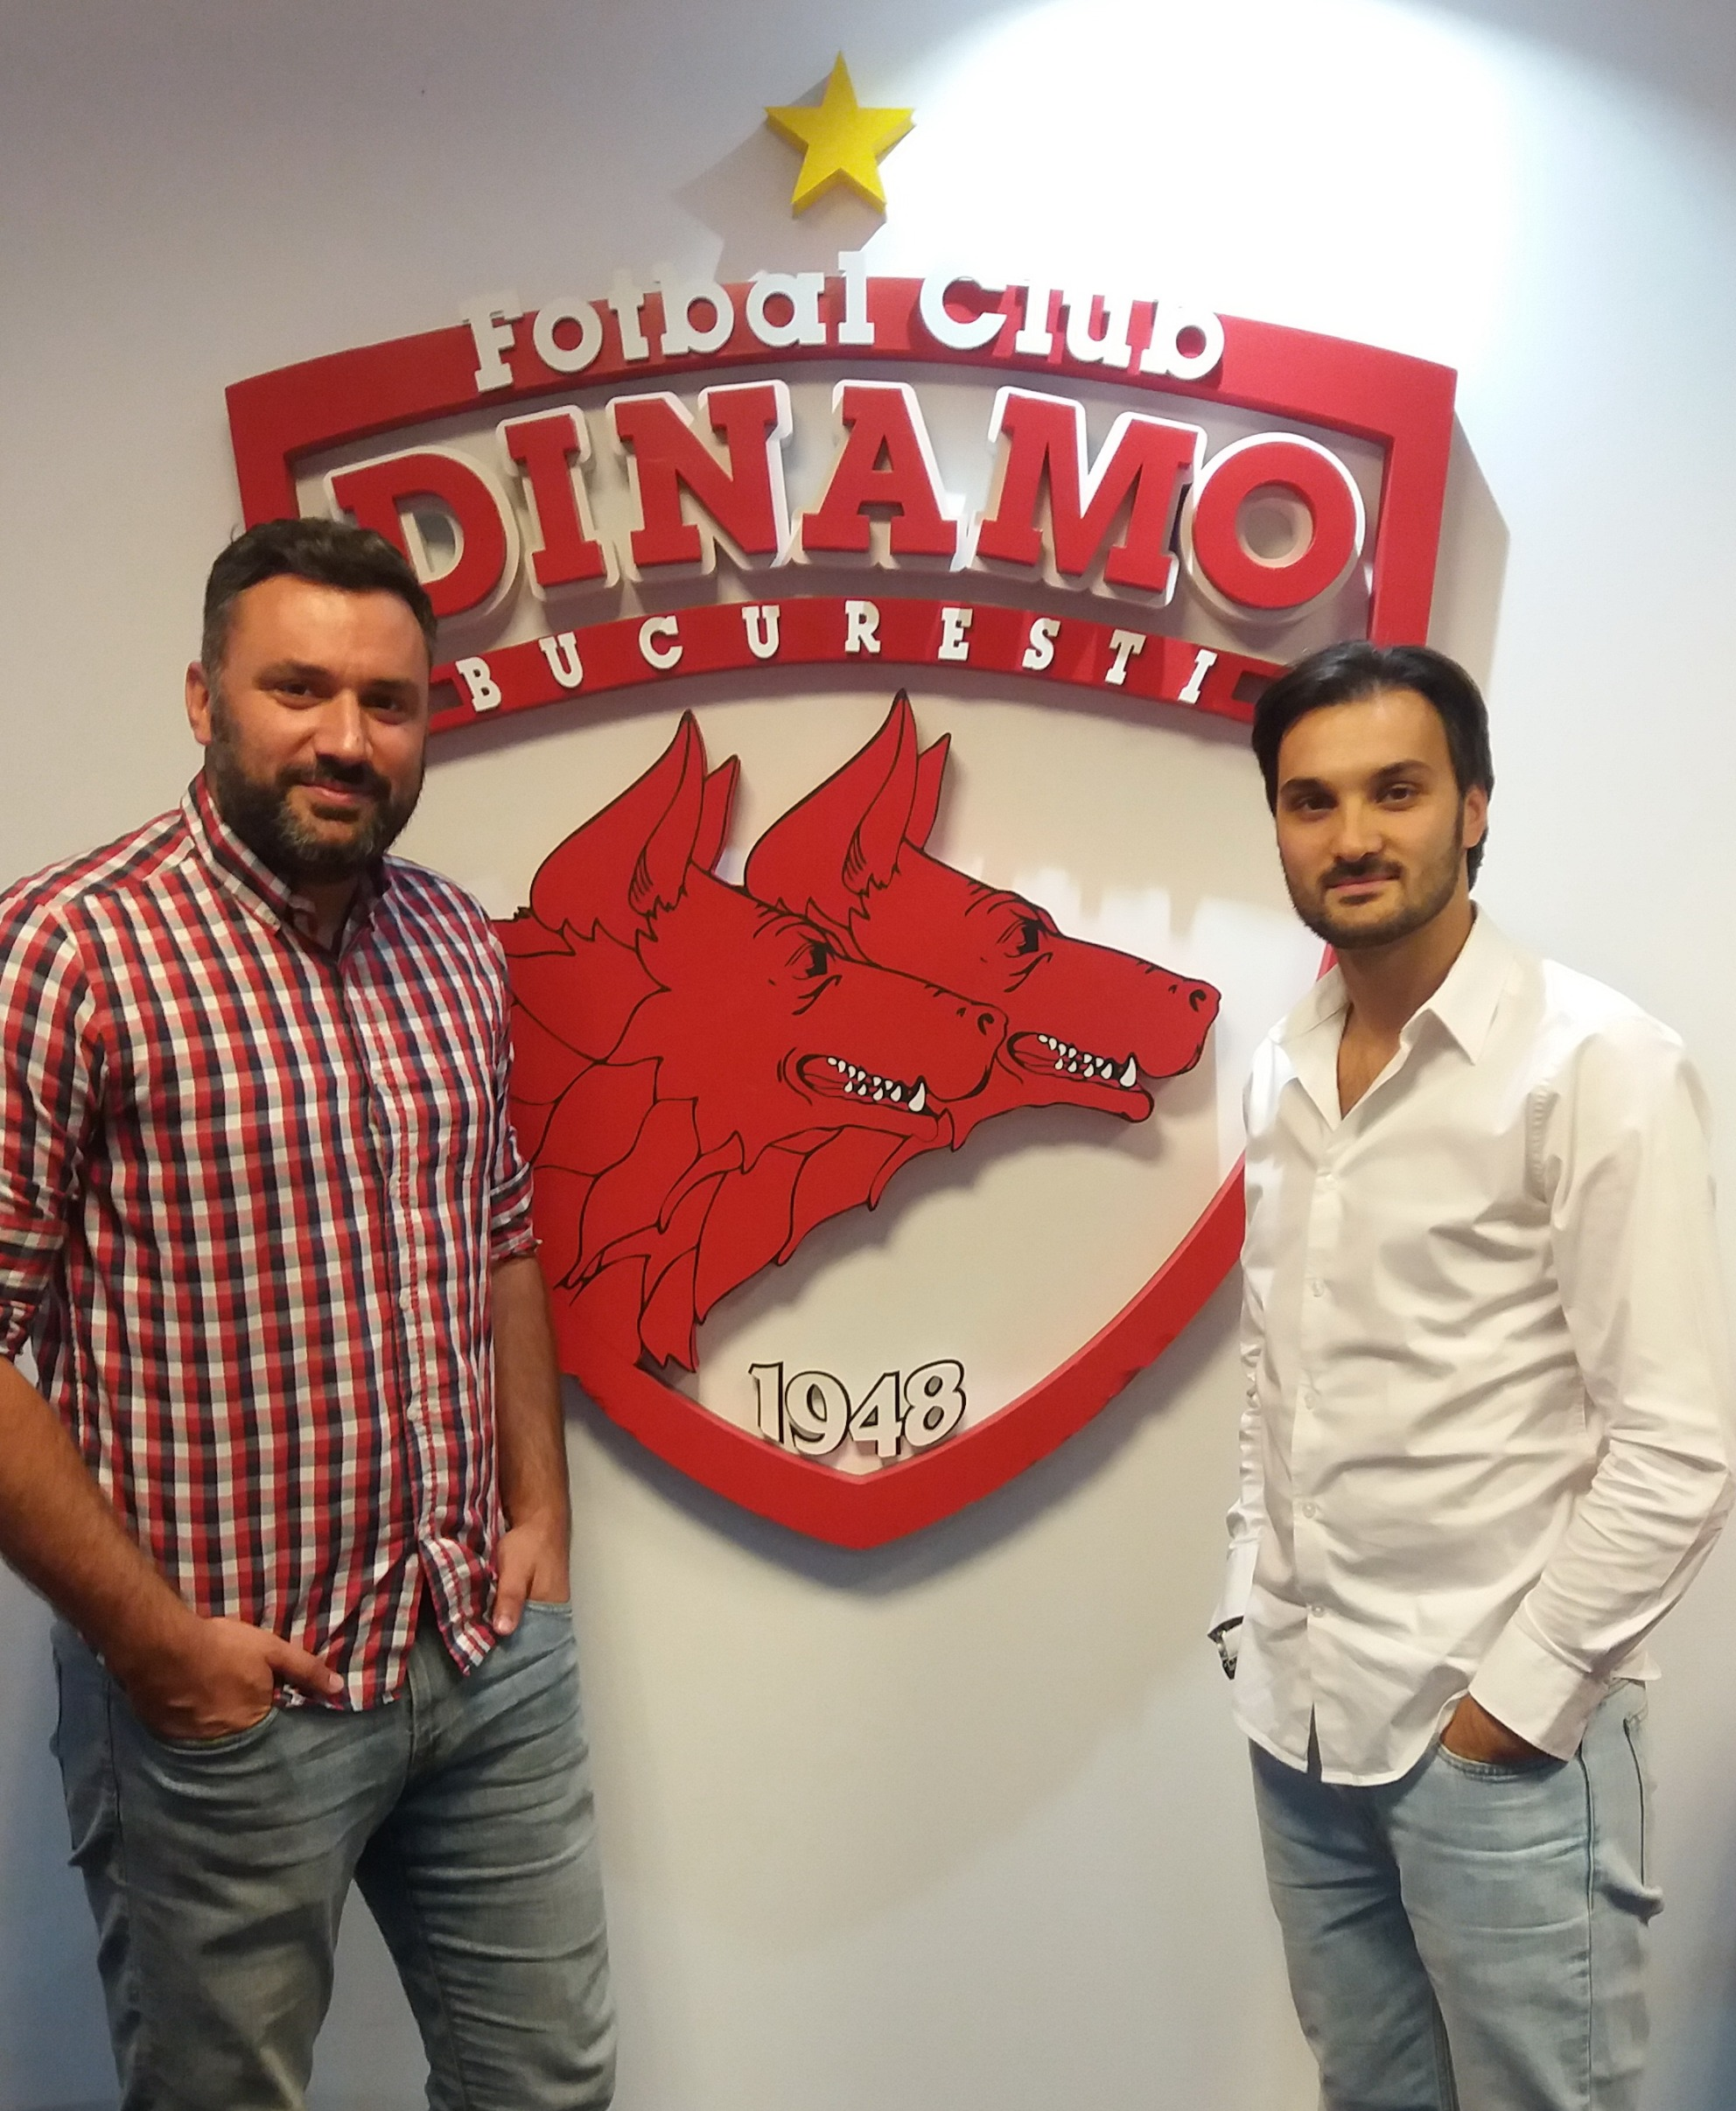 Toghether with Scouting Director of Dinamo Bucharest